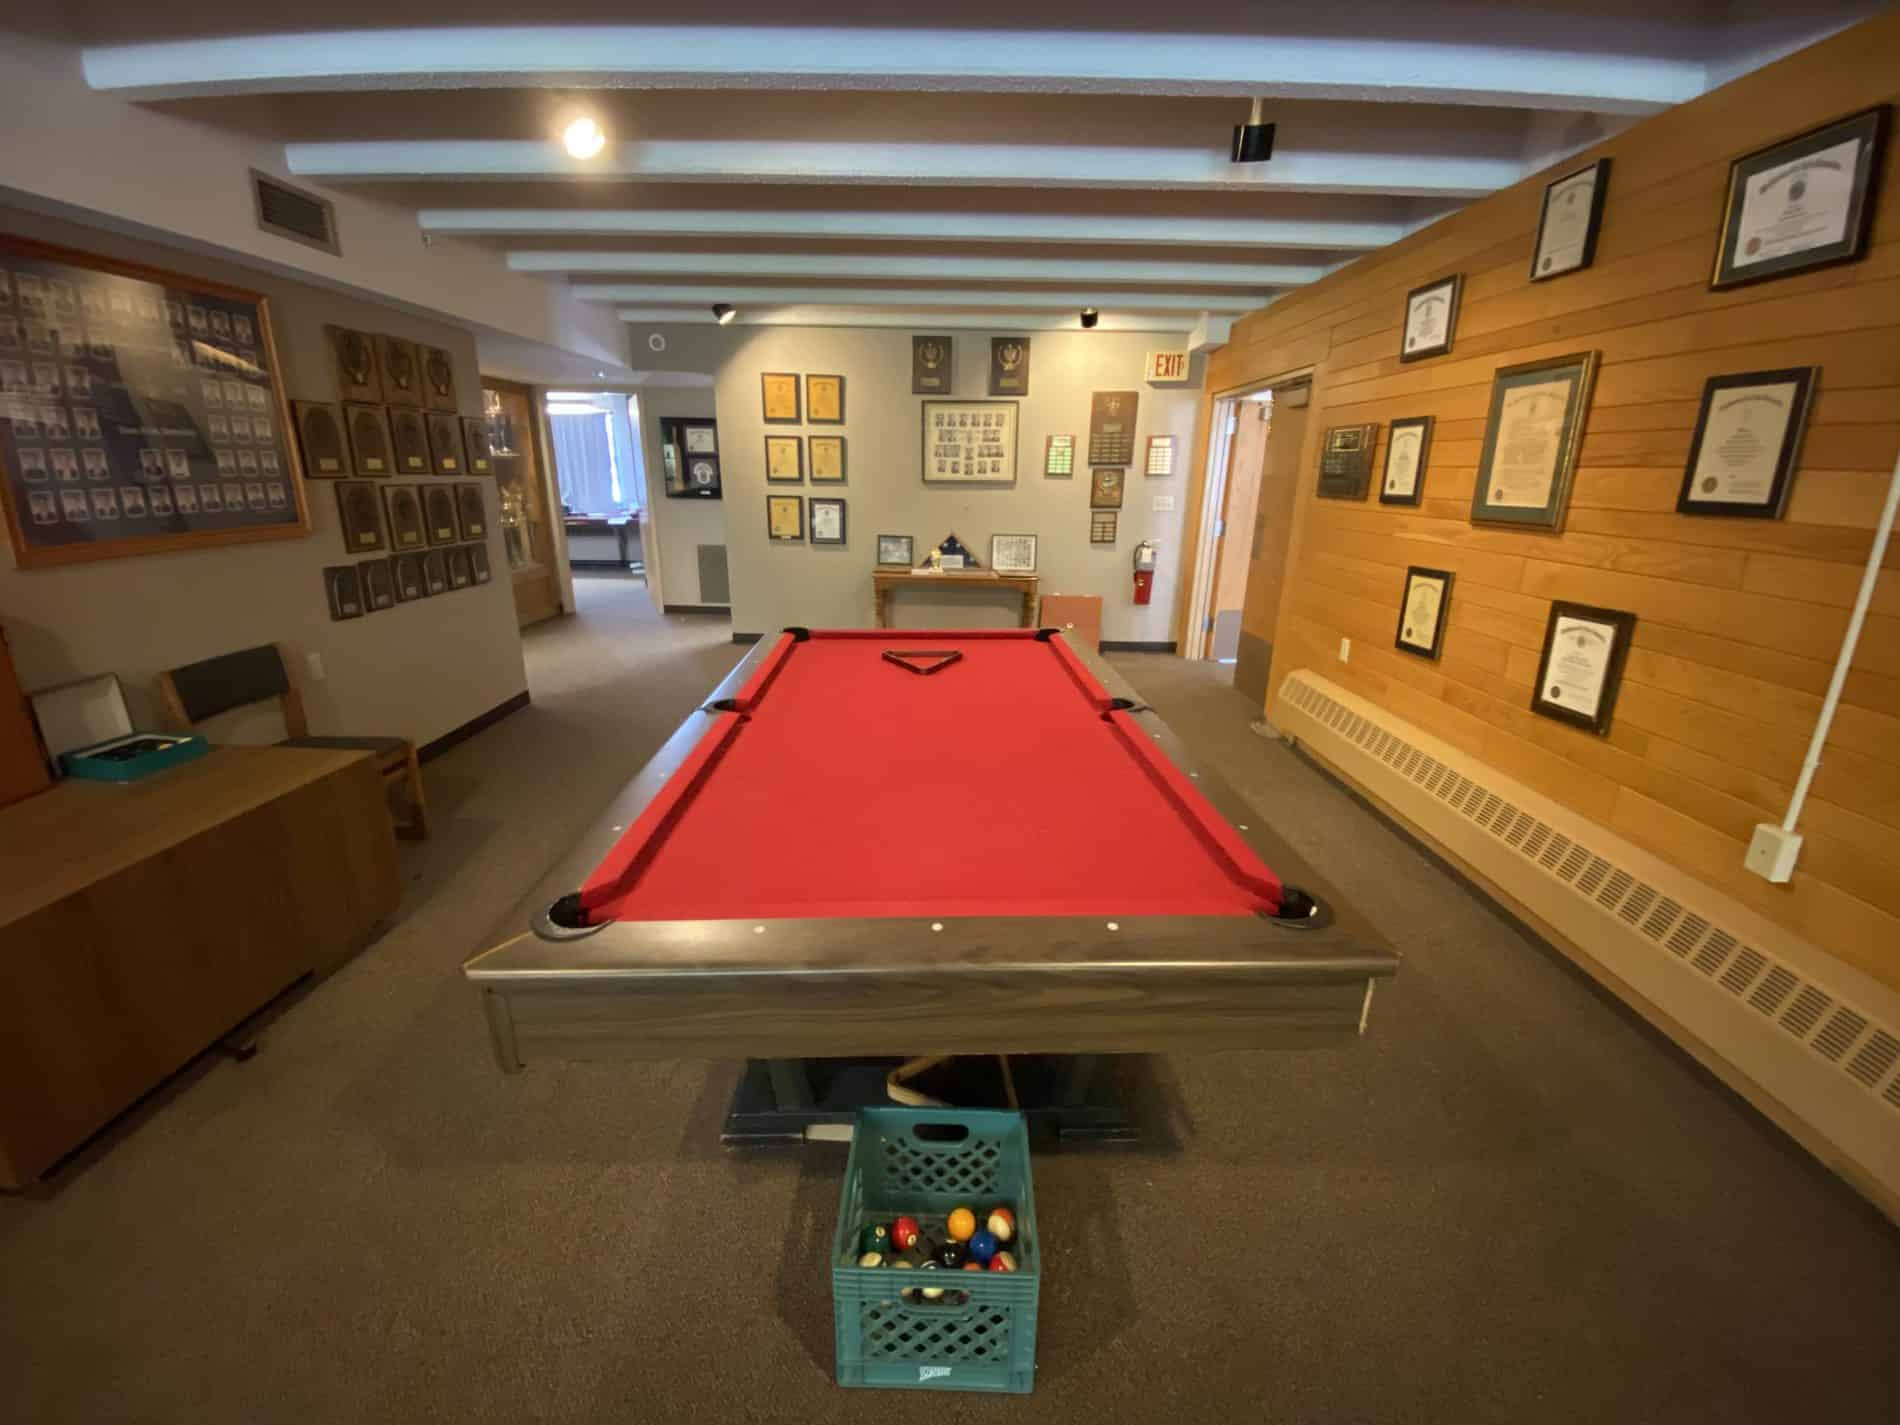 Lambda Chi Alpha's formal room features a pool table constructed by brothers and used daily for recreation.